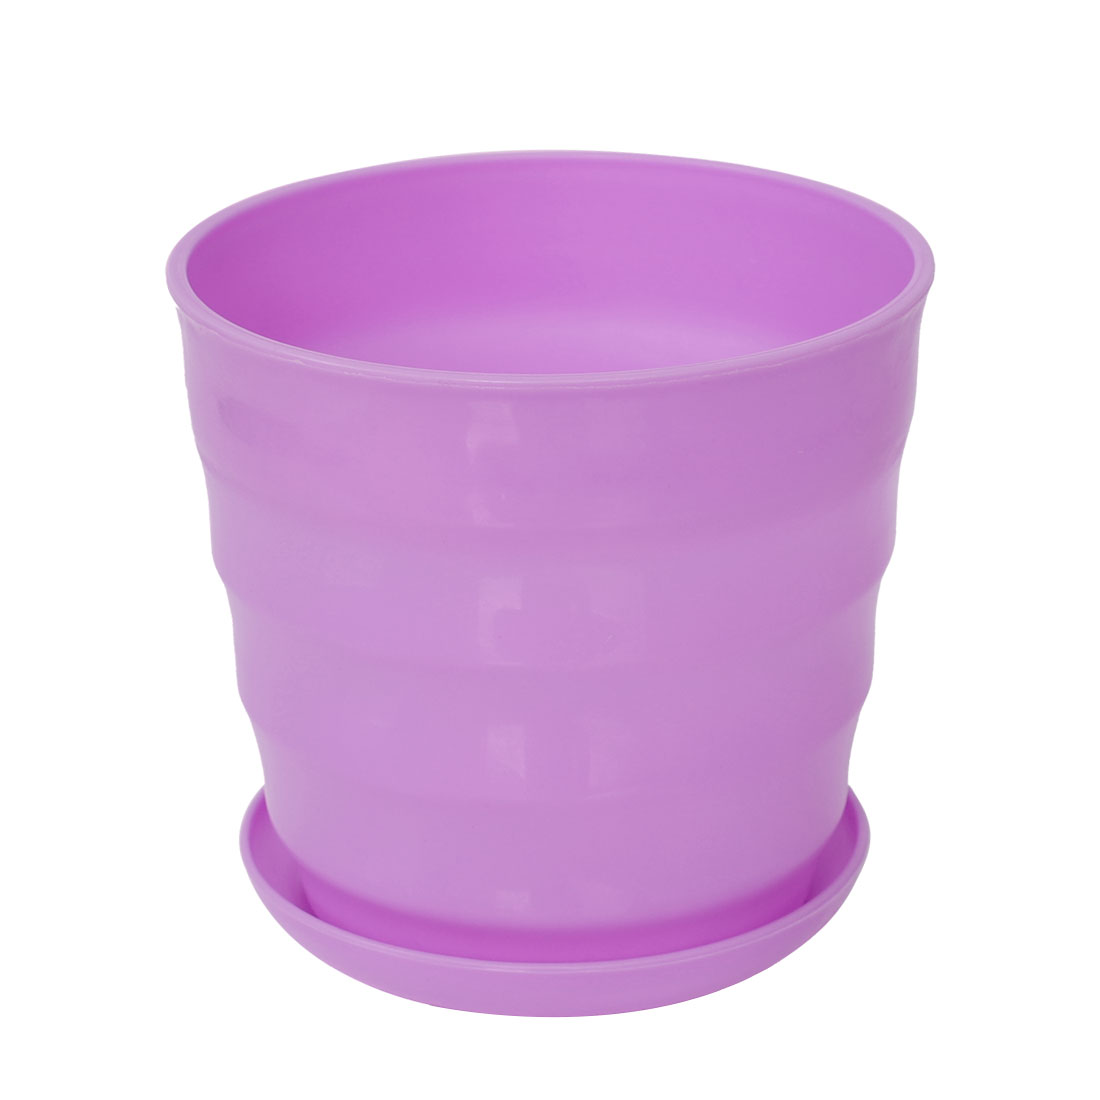 Home Garden Patio Office Plastic Stripe Pattern Plant Flower Holder Pot Purple